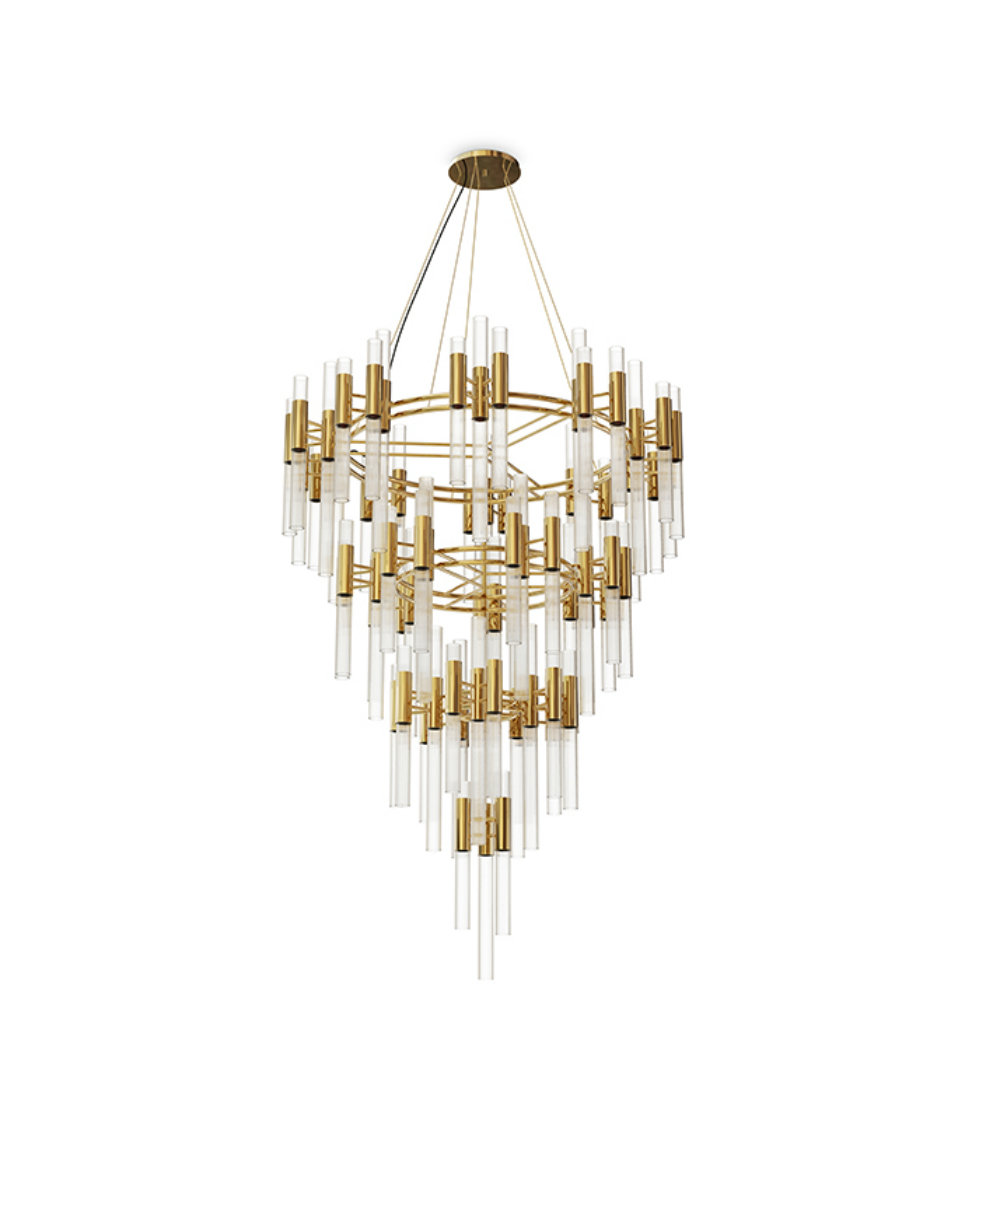 Lighting Inspiration: Meet the Waterfall Collection